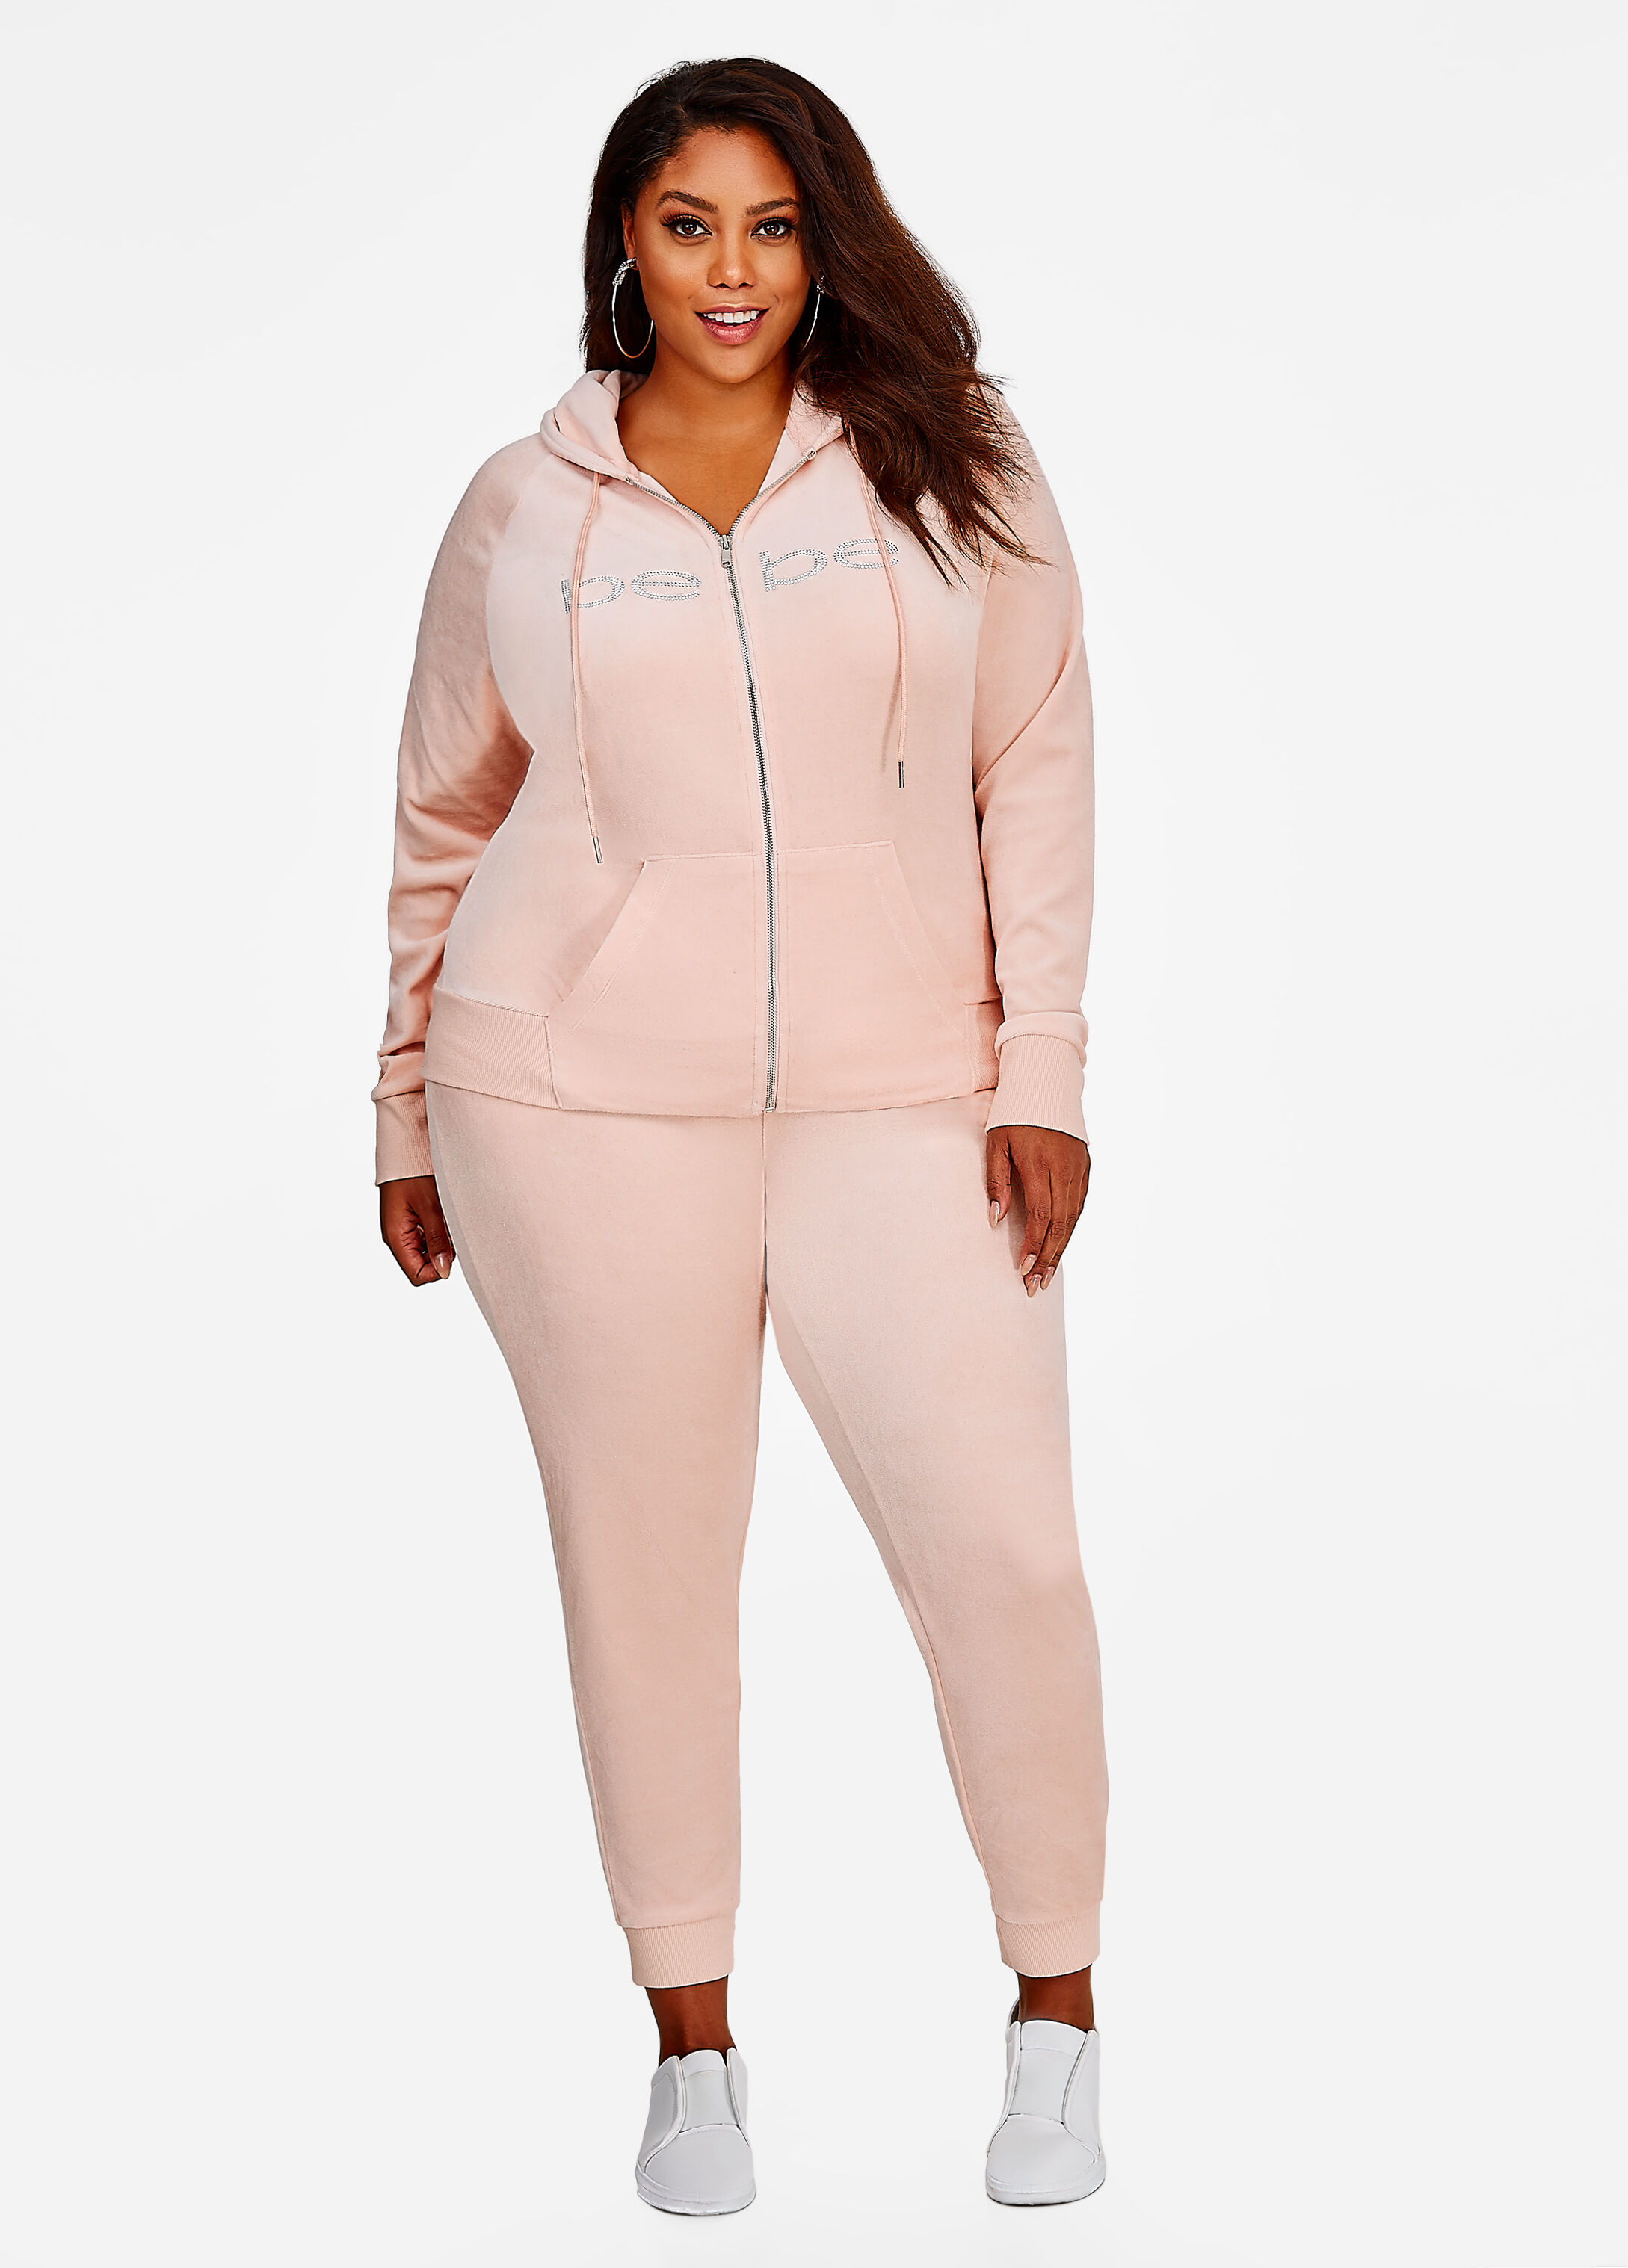 Plus Size Outfits - Bebe Velour Active Set in Pale Pink